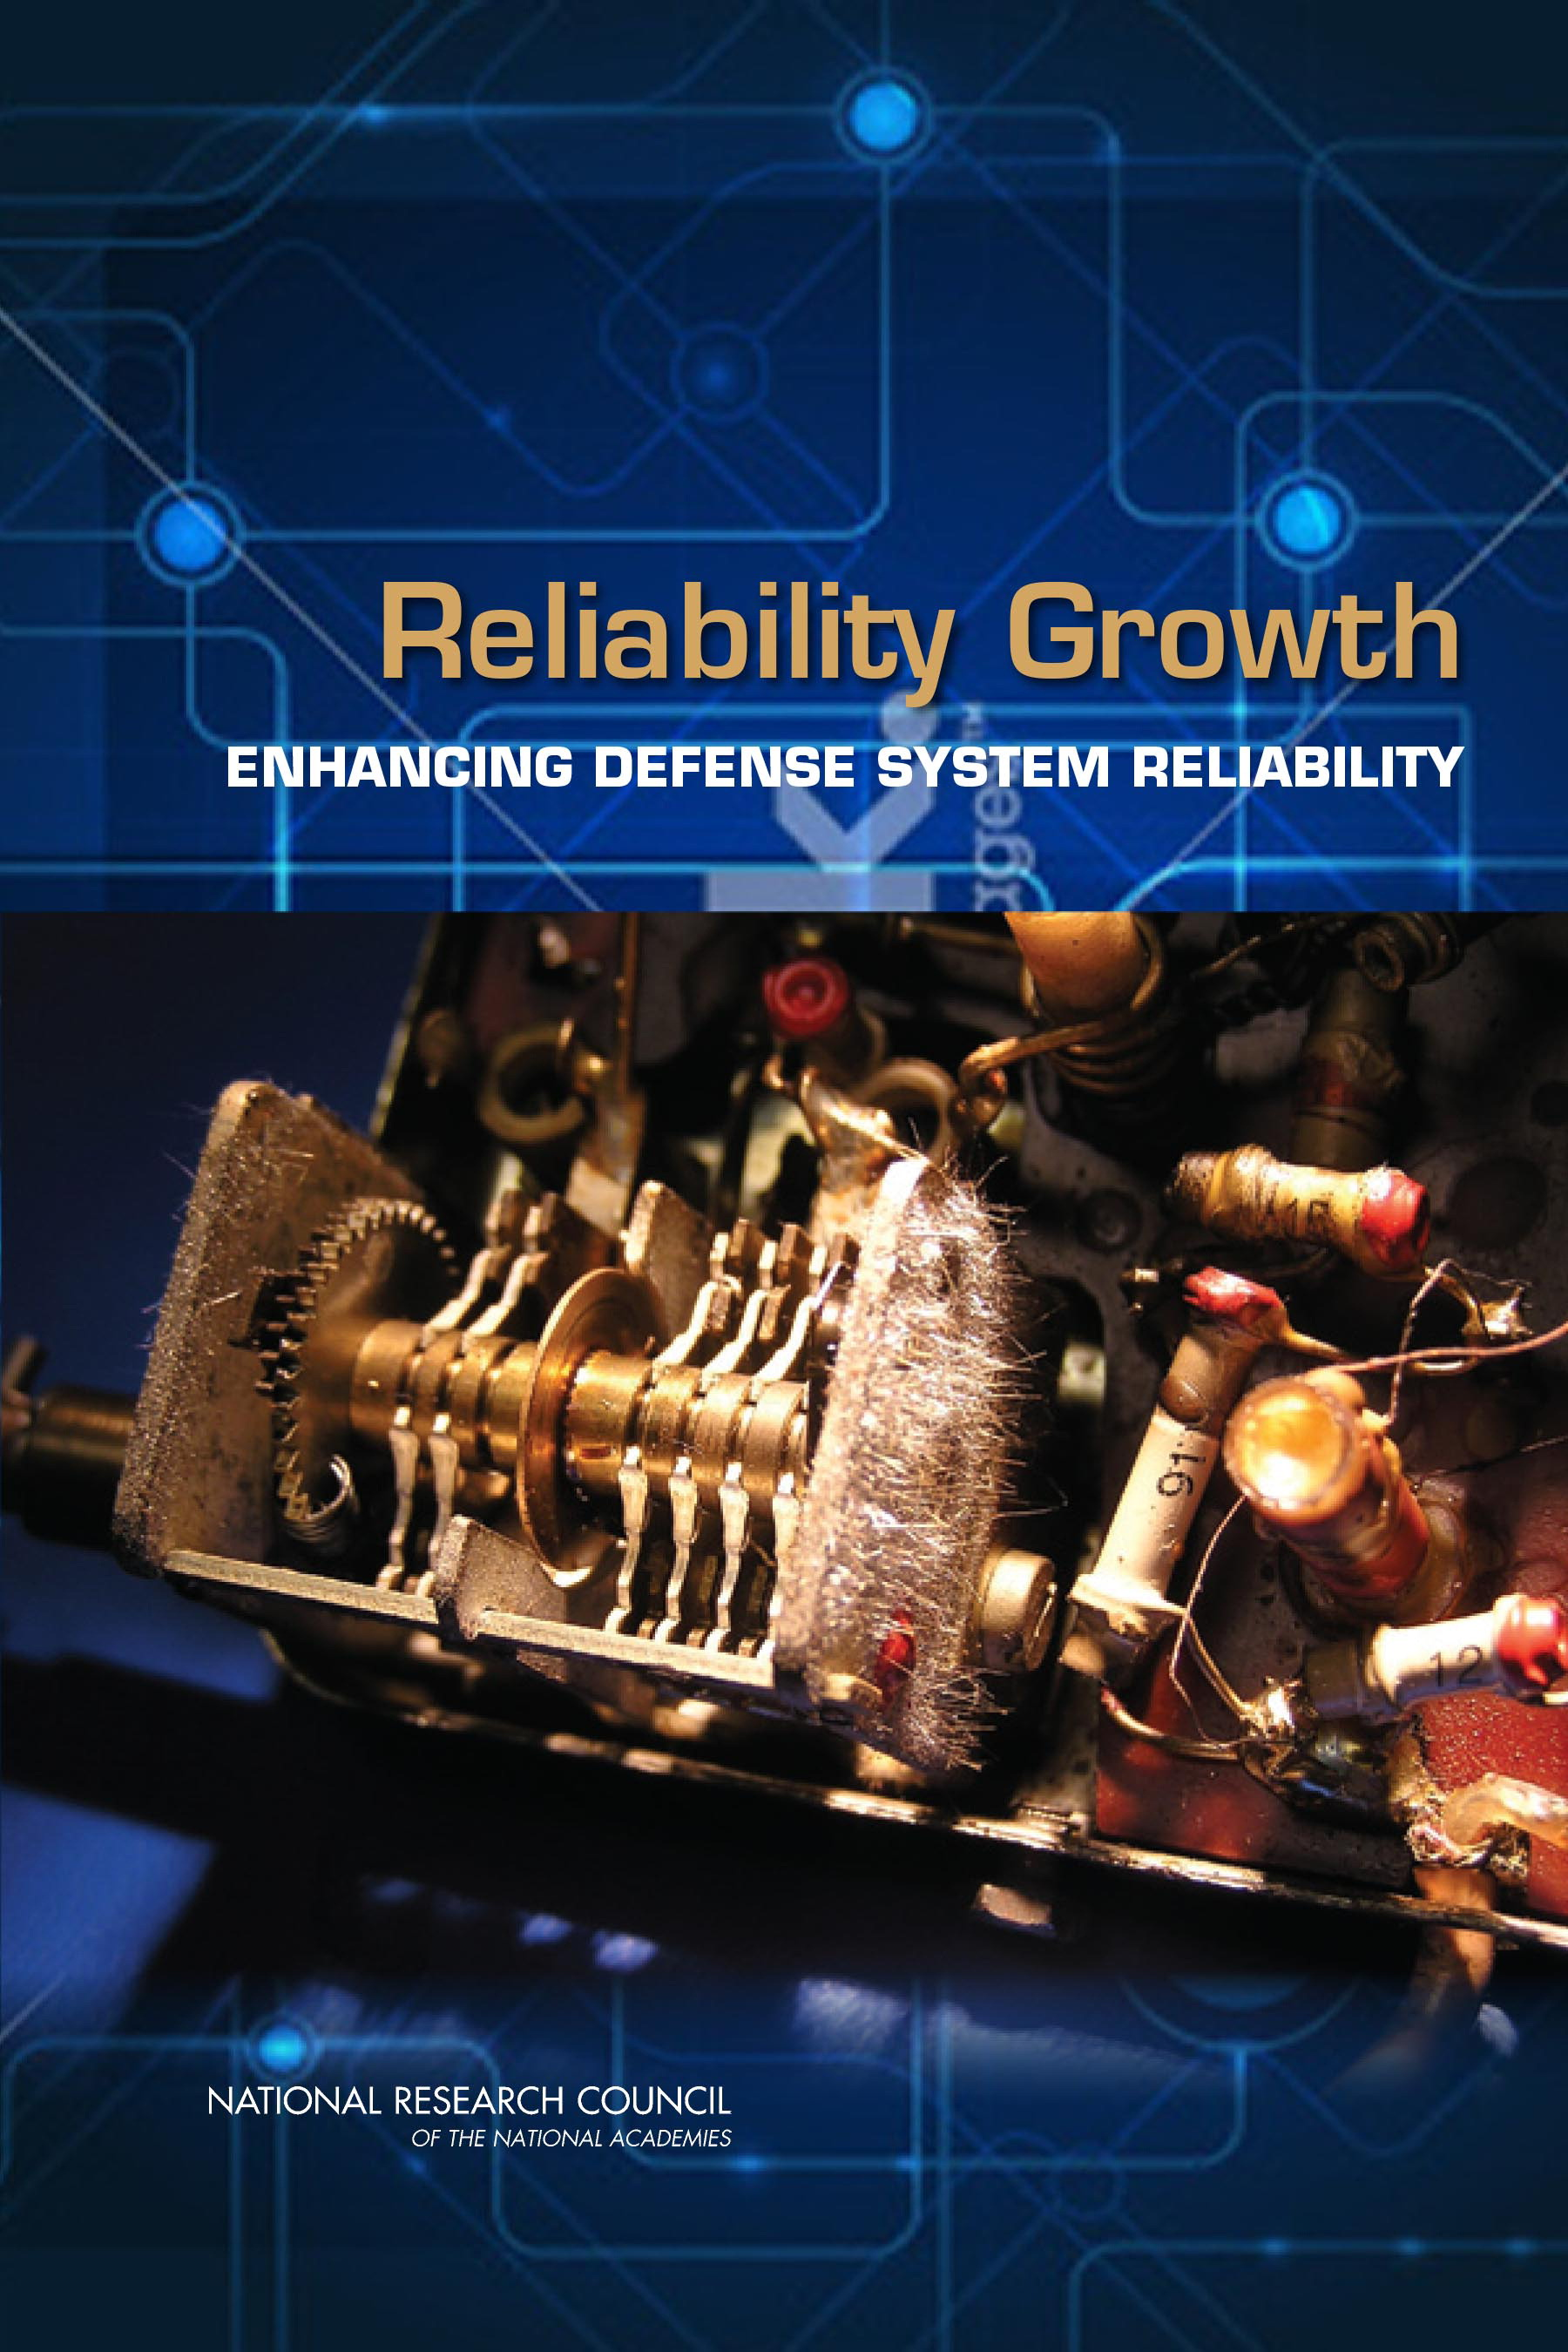 Reliability Growth cover